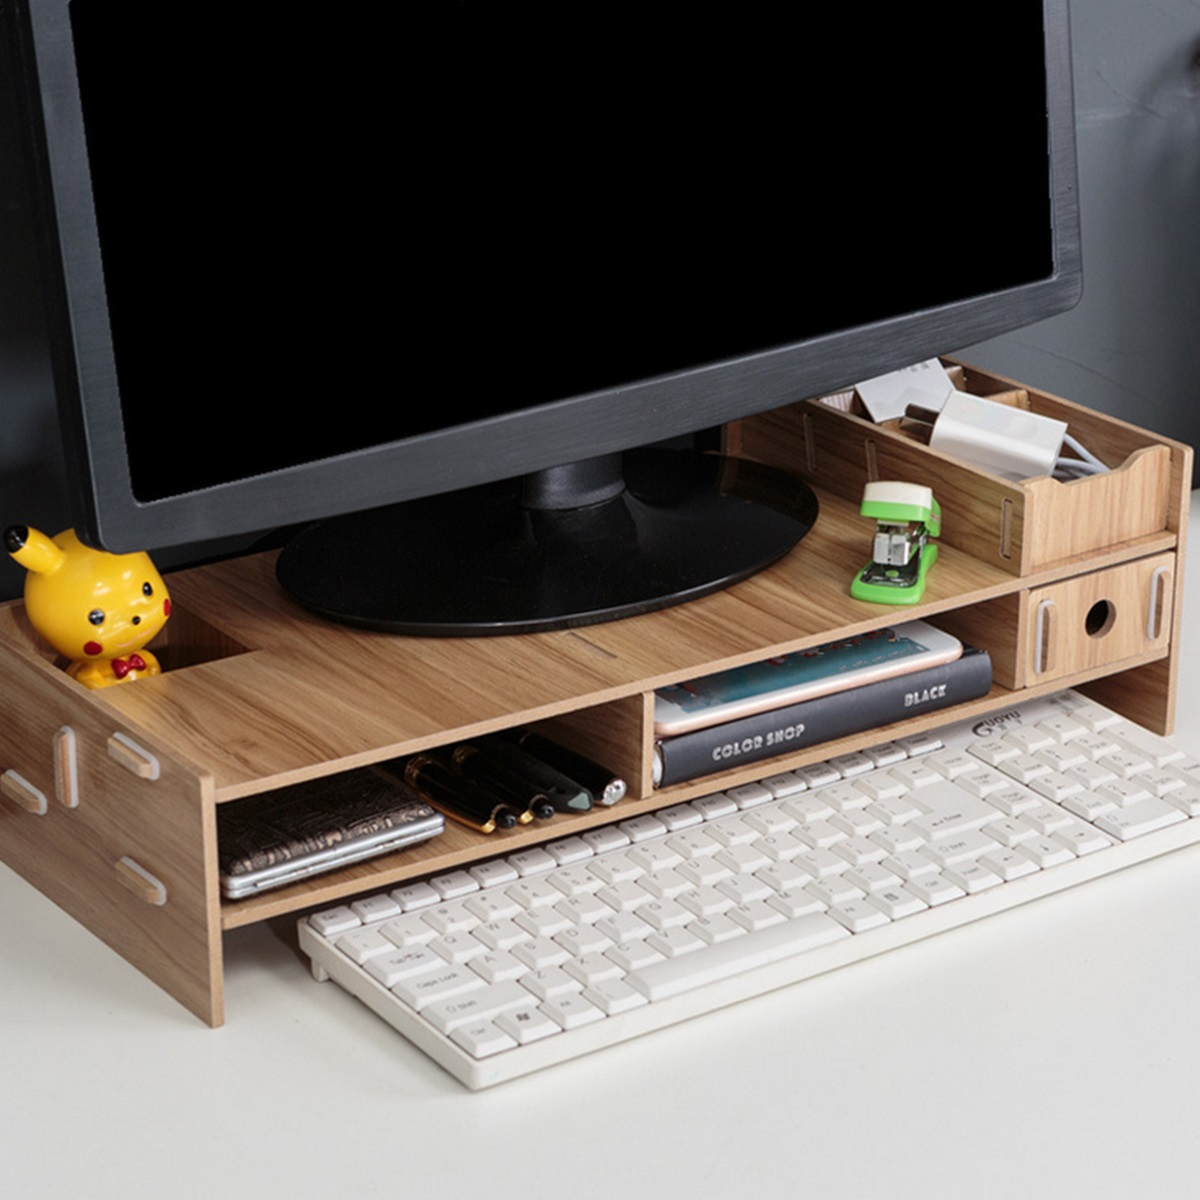 Desk-Holder Shelf Laptop-Stand Wood Desktop Monitor Stand Computer Screen Riser Shelf Plinth Strong Laptop Stand Desk Holder